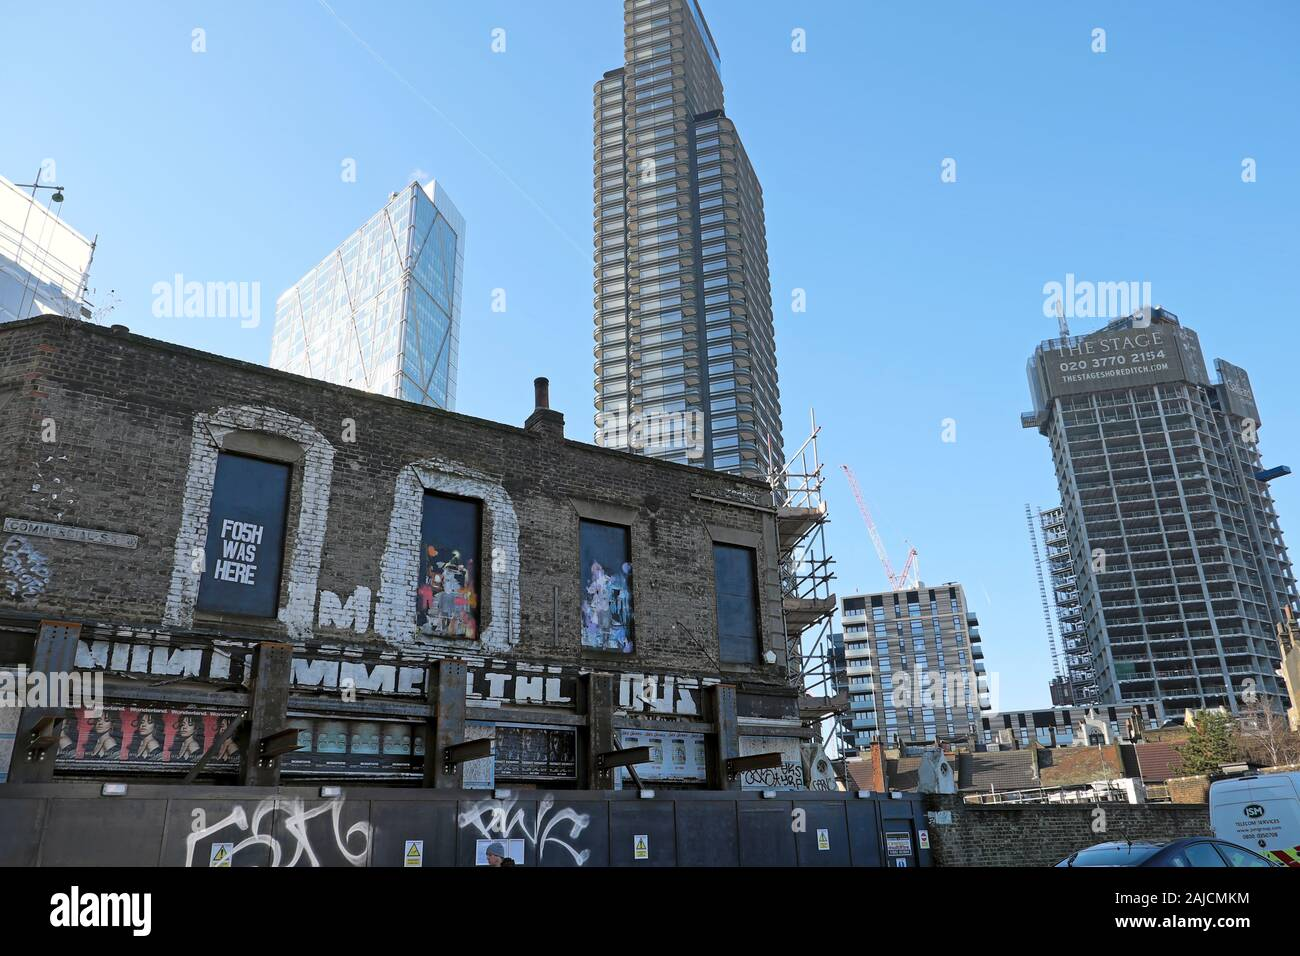 View of old new buildings Principal Place and The Stage high rise residential tower under construction from Commercial Street London E1  KATHY DEWITT Stock Photo